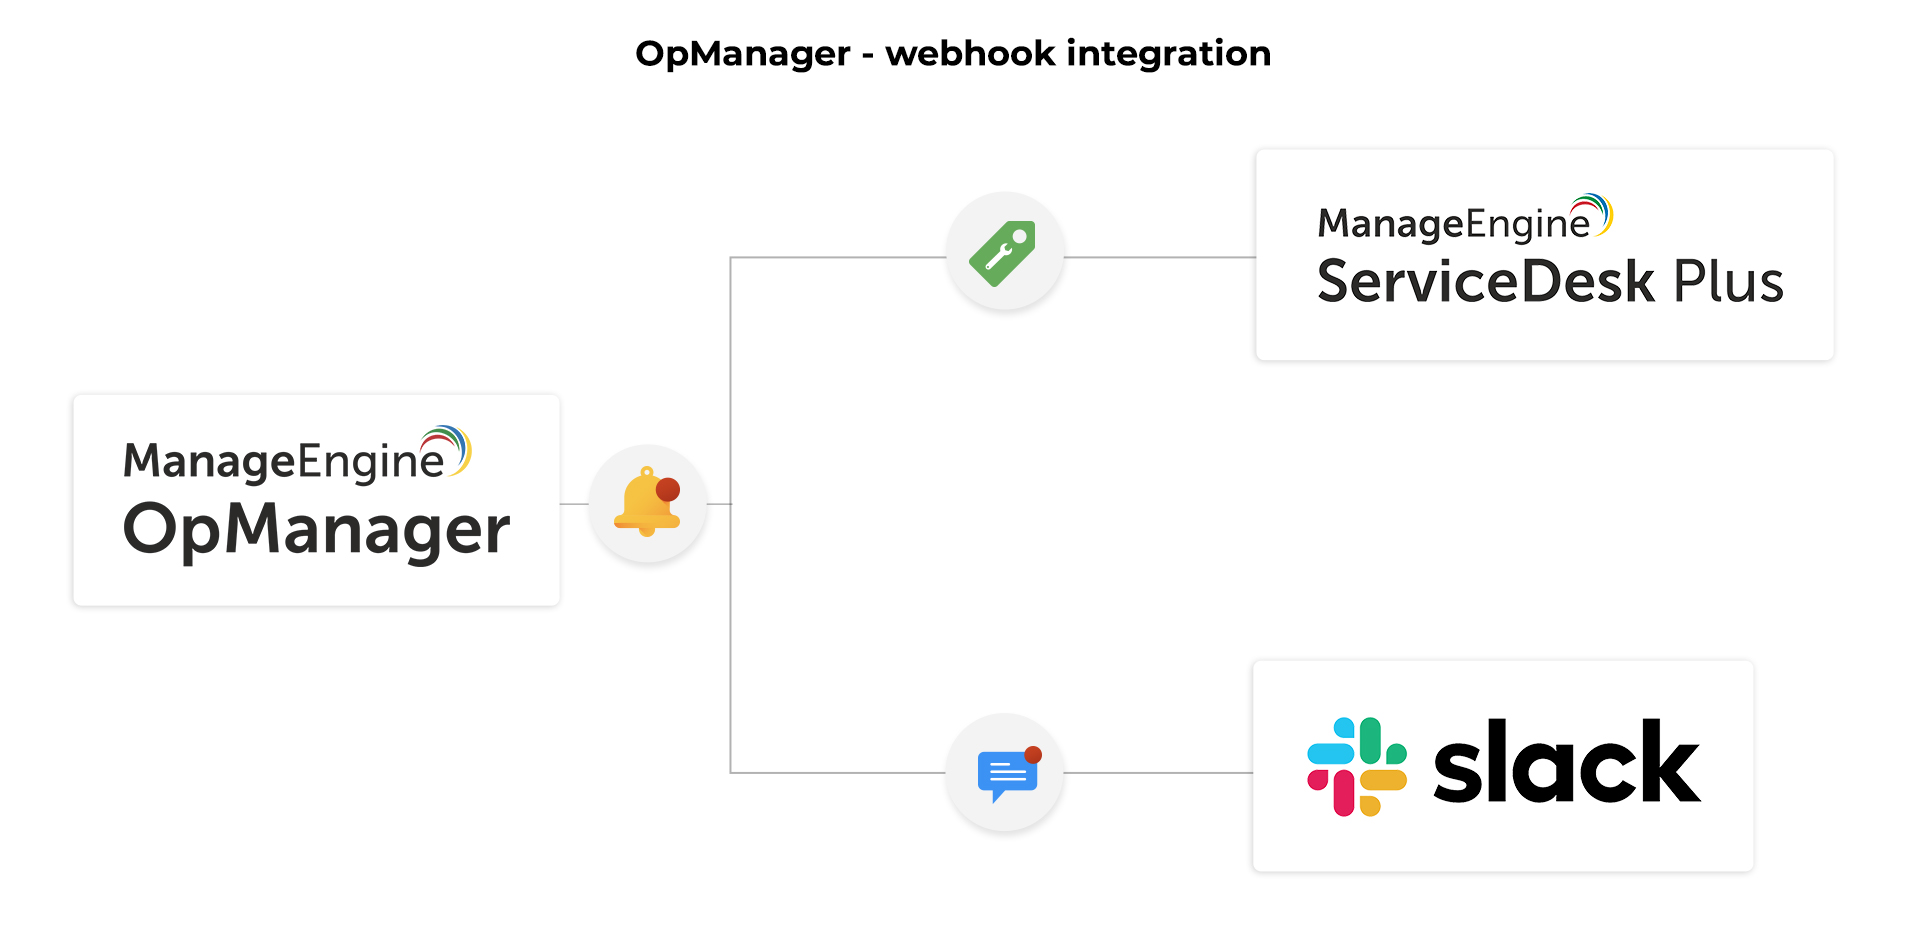 Webhook integration with OpManager - ManageEngine OpManager